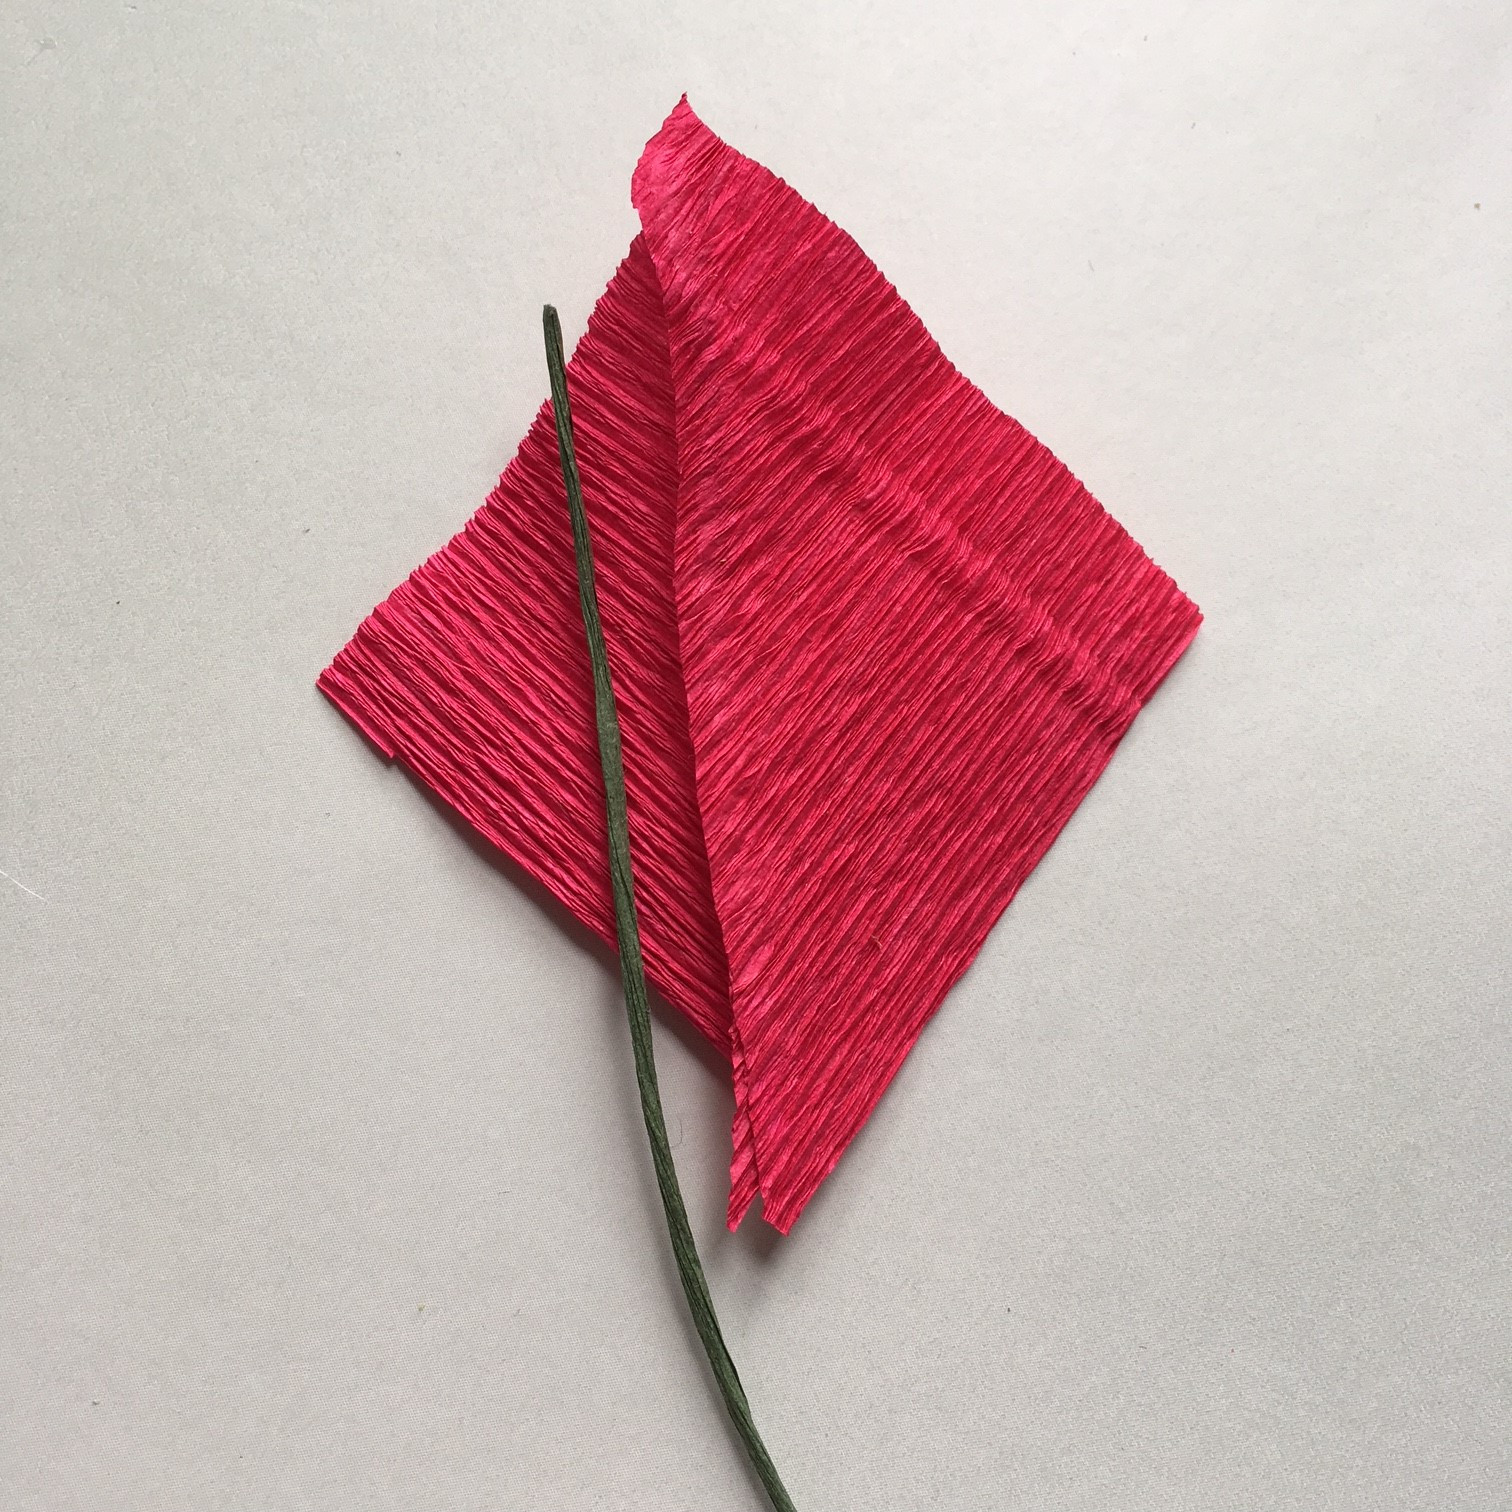 making the leaves for crepe paper Poinsettia for Christmas gift